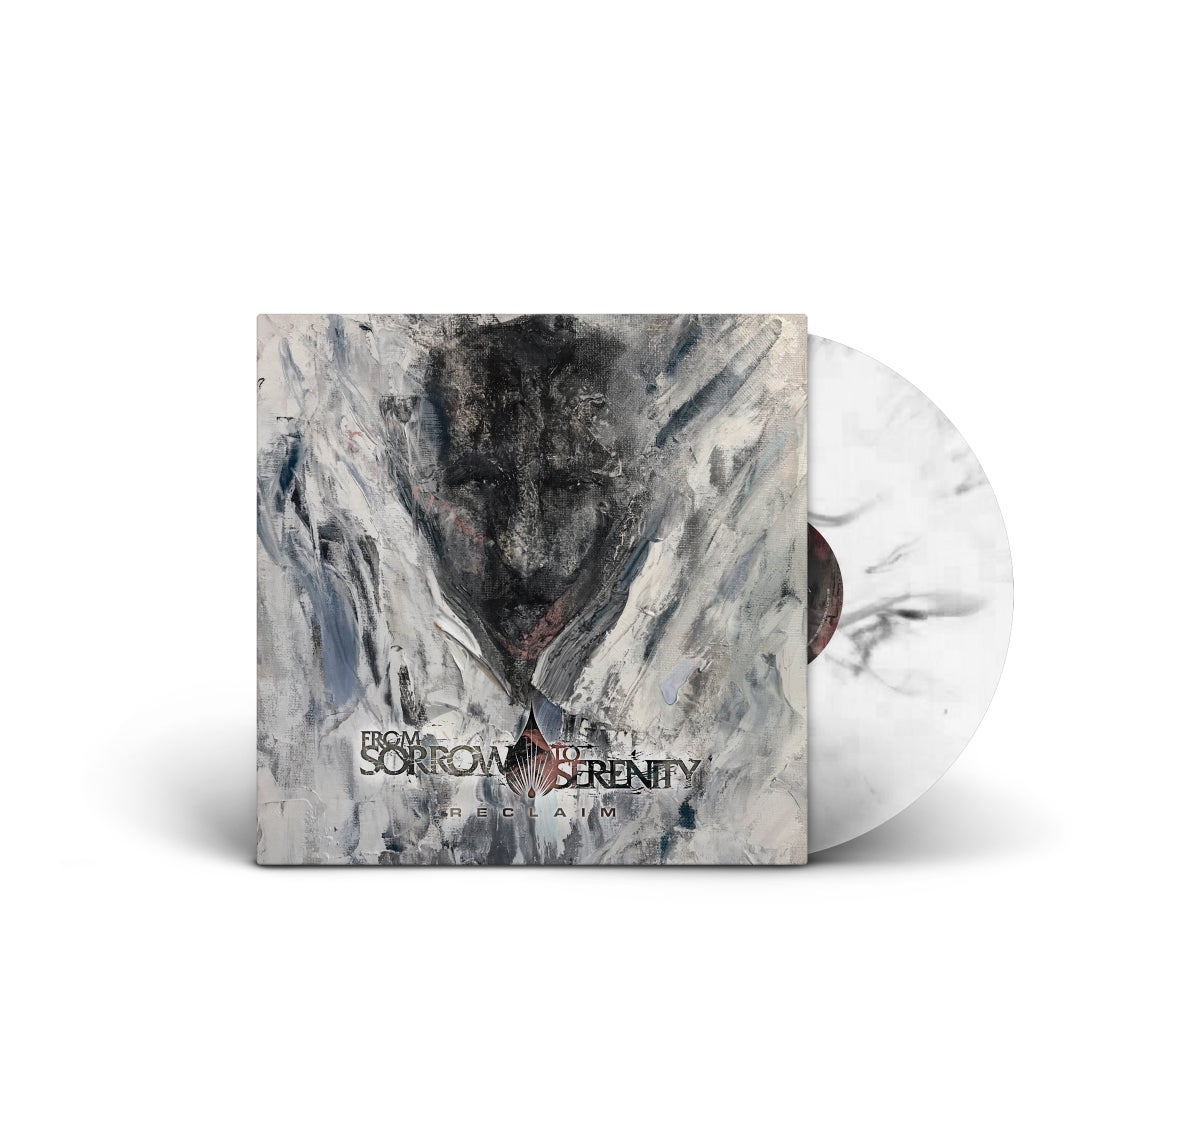 Image of 'RECLAIM' VINYL